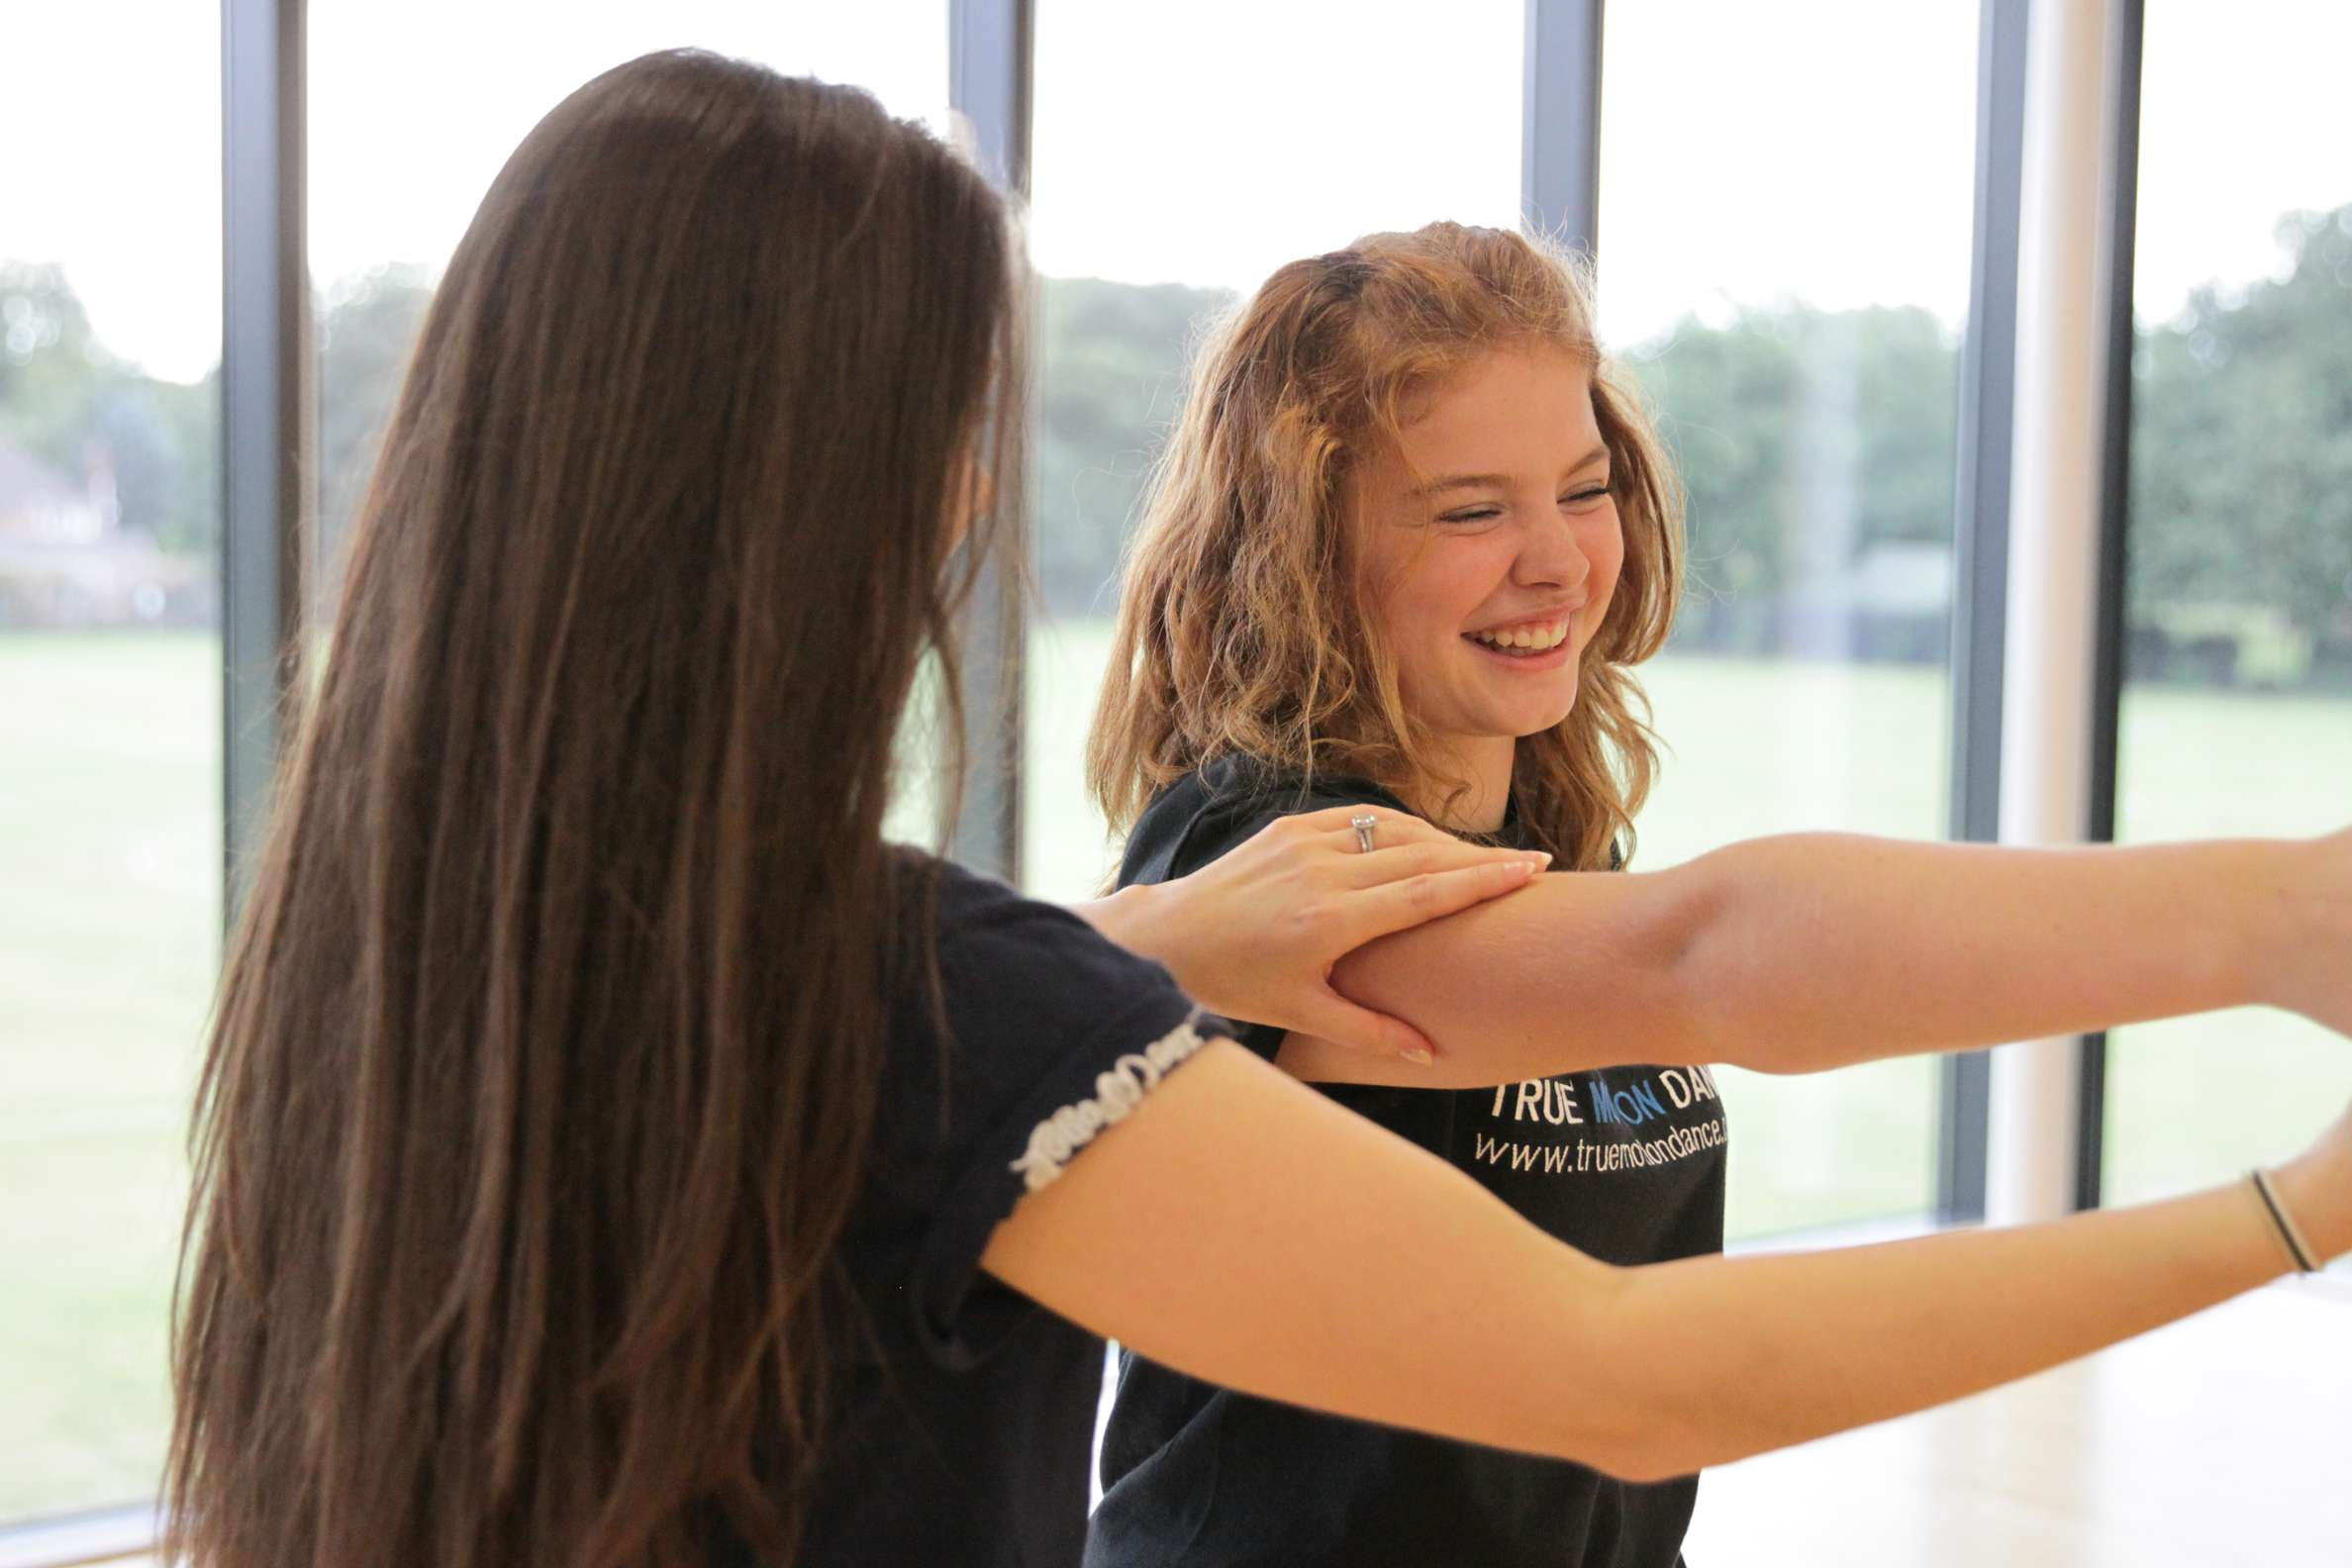 Kelly delivering a private dance lesson at The Atrium in North Walsham